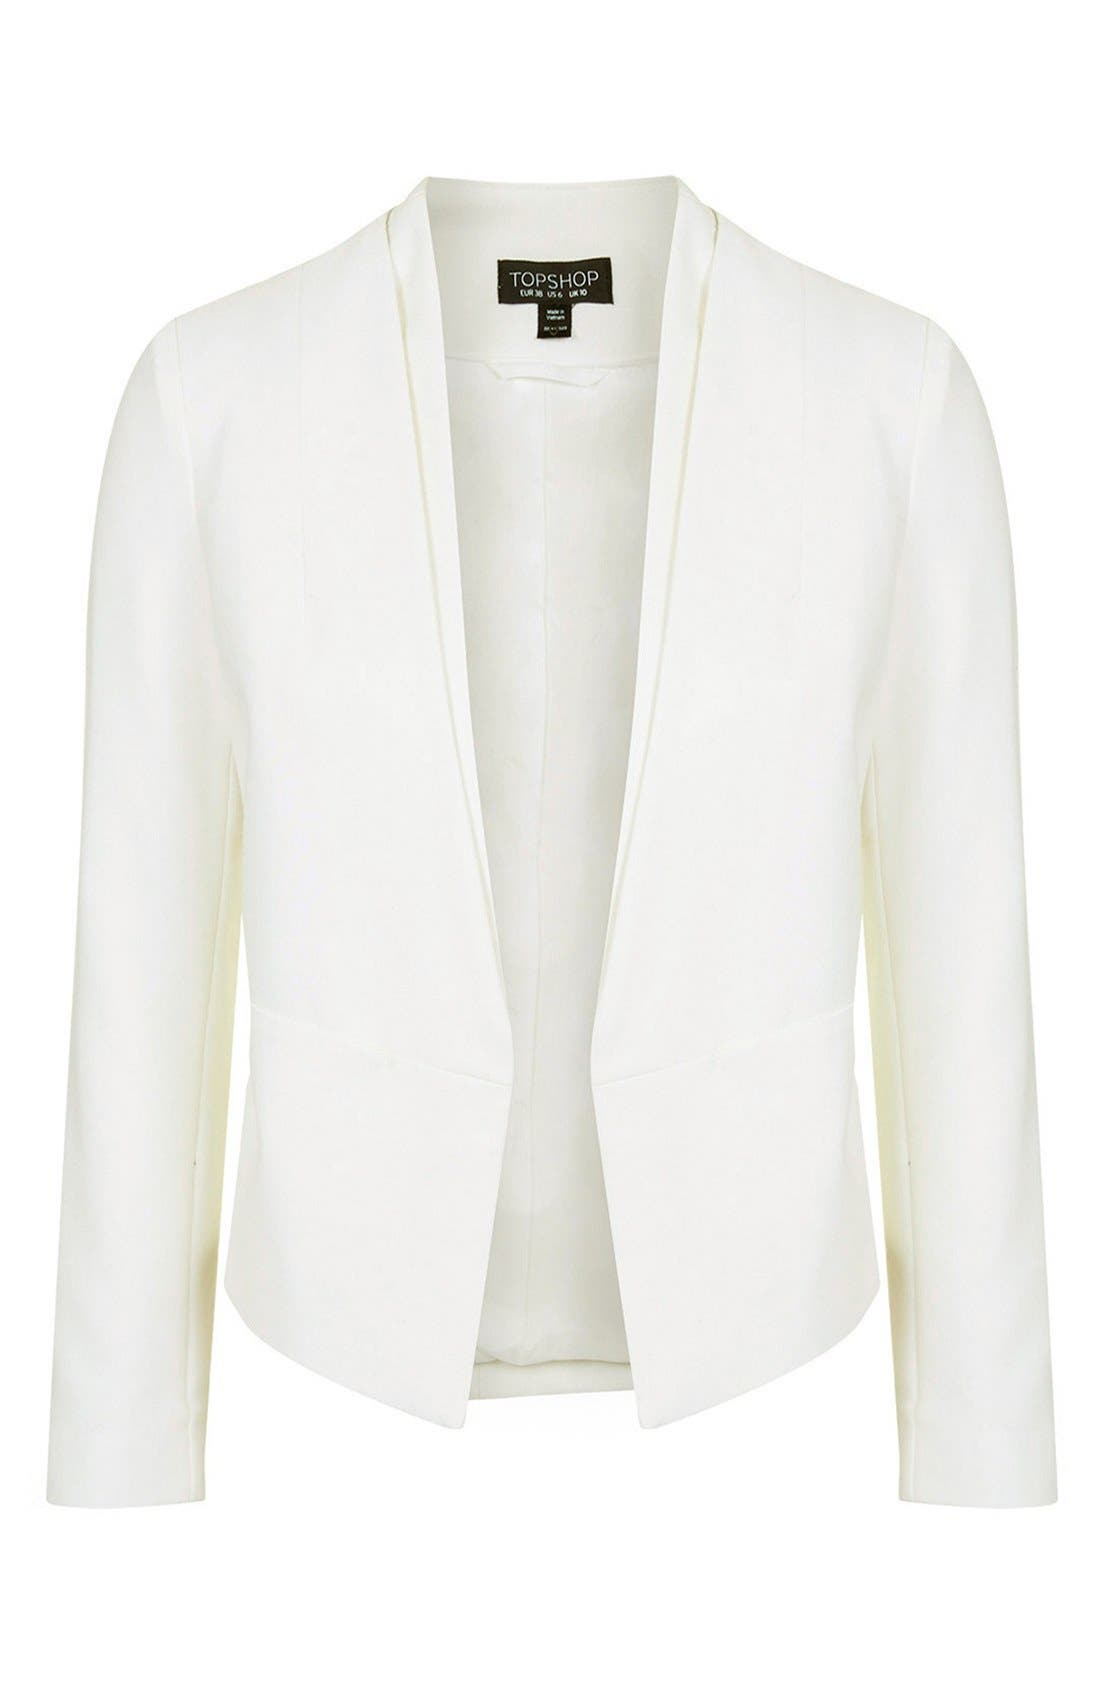 Alternate Image 3  - Topshop 'Poppy' Double Collar Blazer